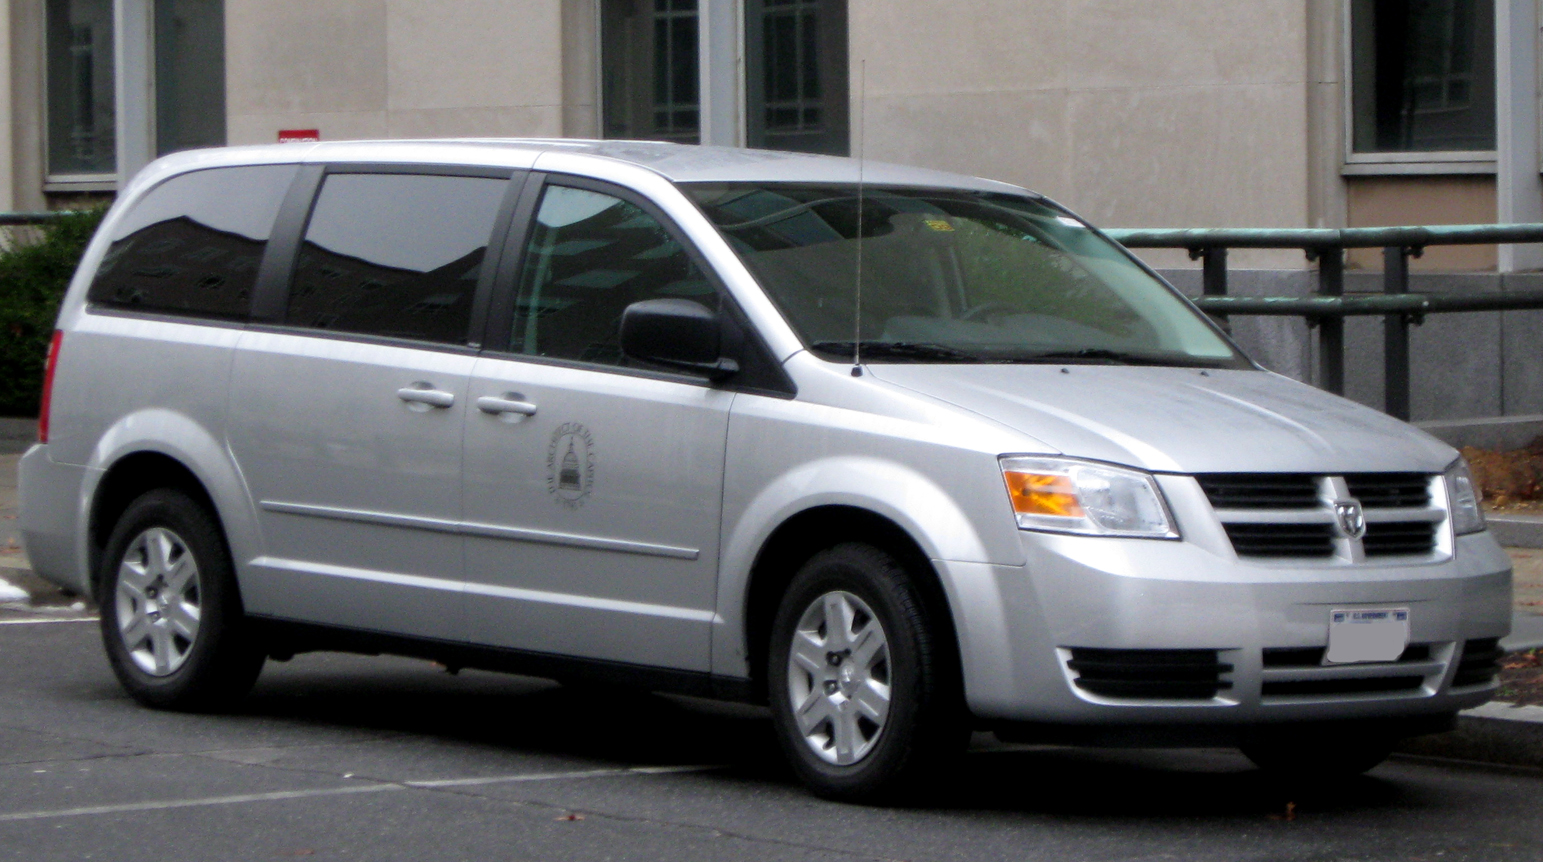 Description Dodge Grand Caravan SE -- 12-26-2009.jpg